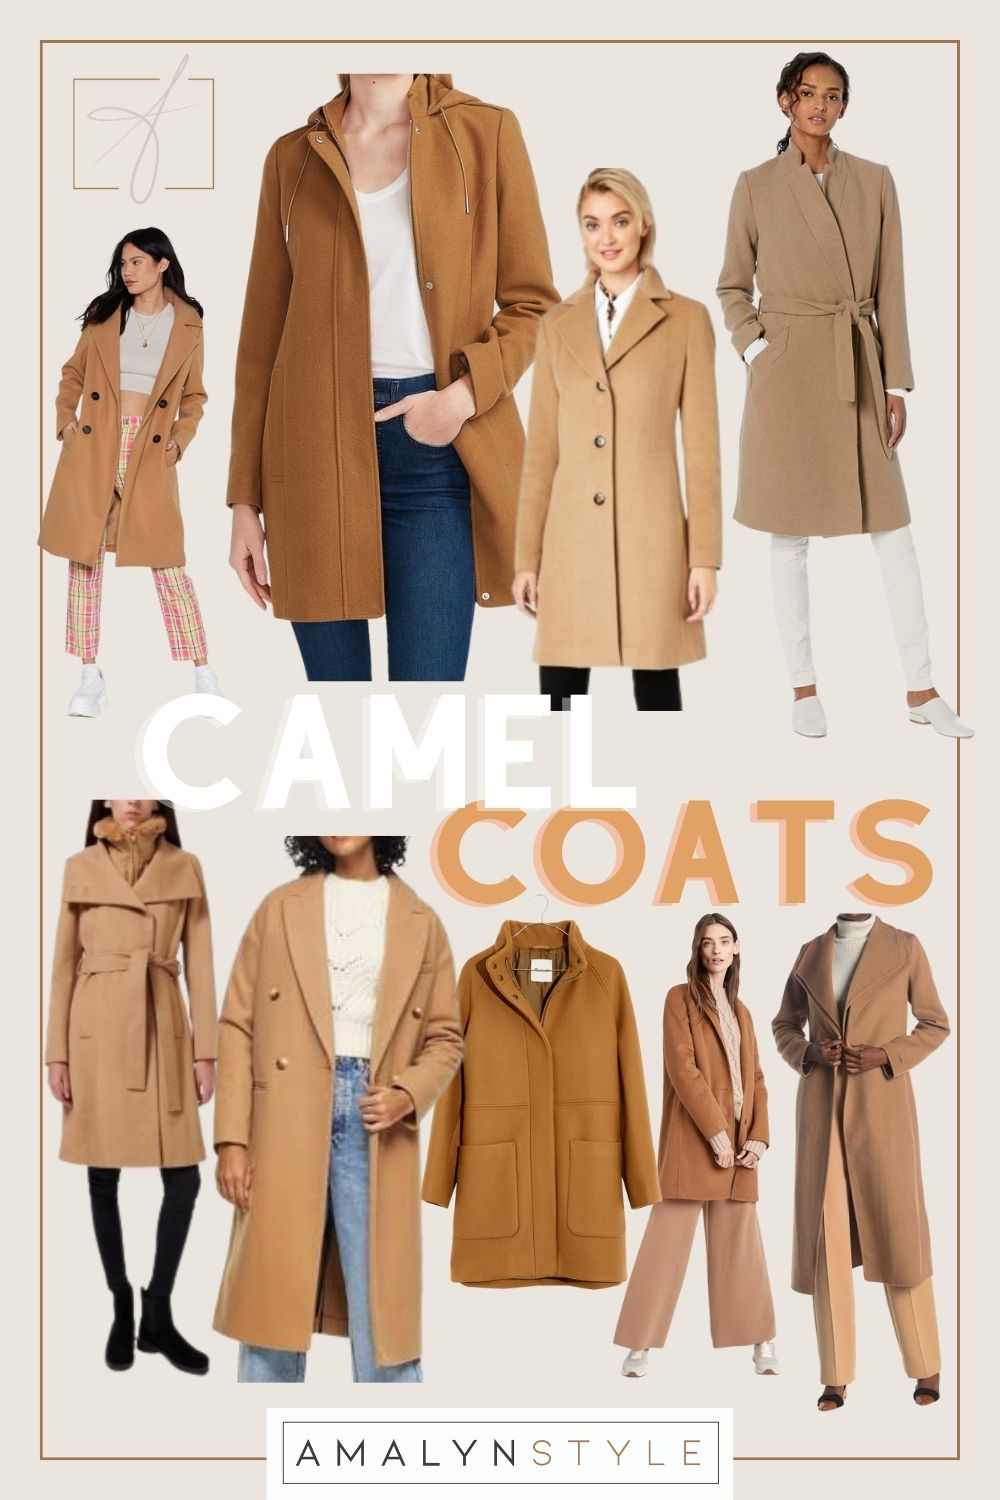 CAMEL COATS FOR YOUR WINTER WARDROBE